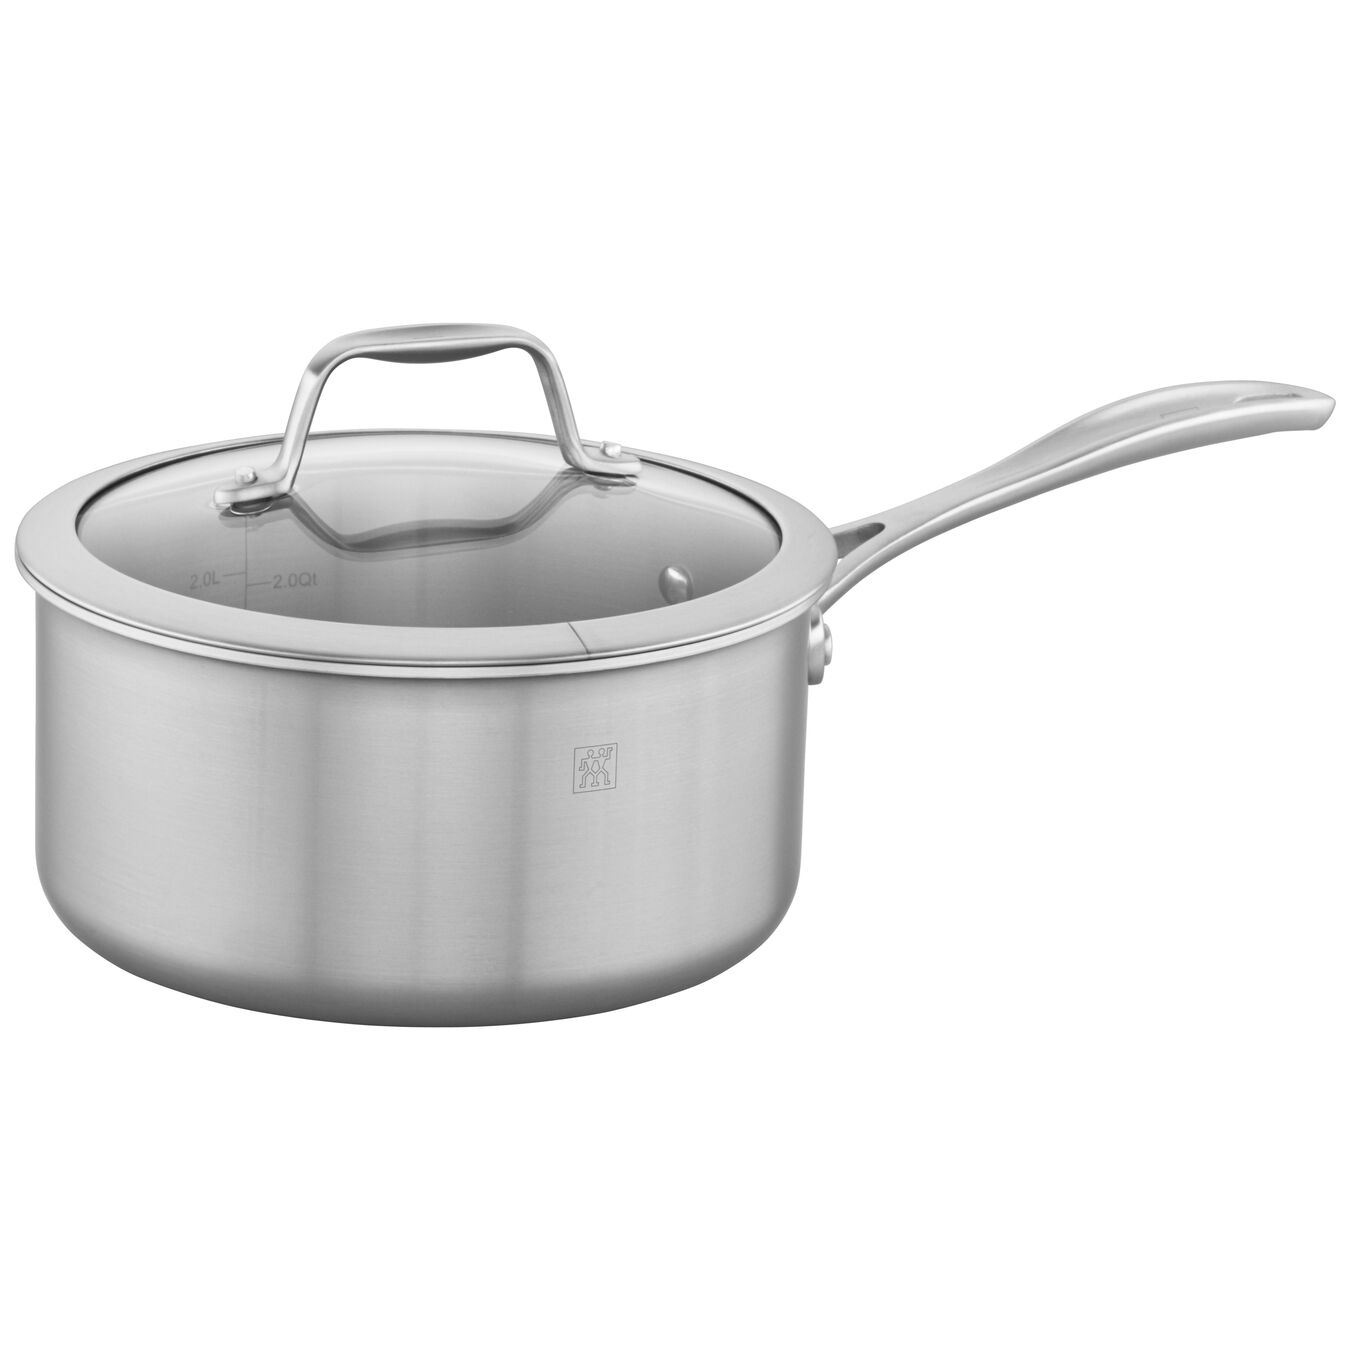 3 qt, 18/10 Stainless Steel, Non-stick, Sauce pan,,large 1